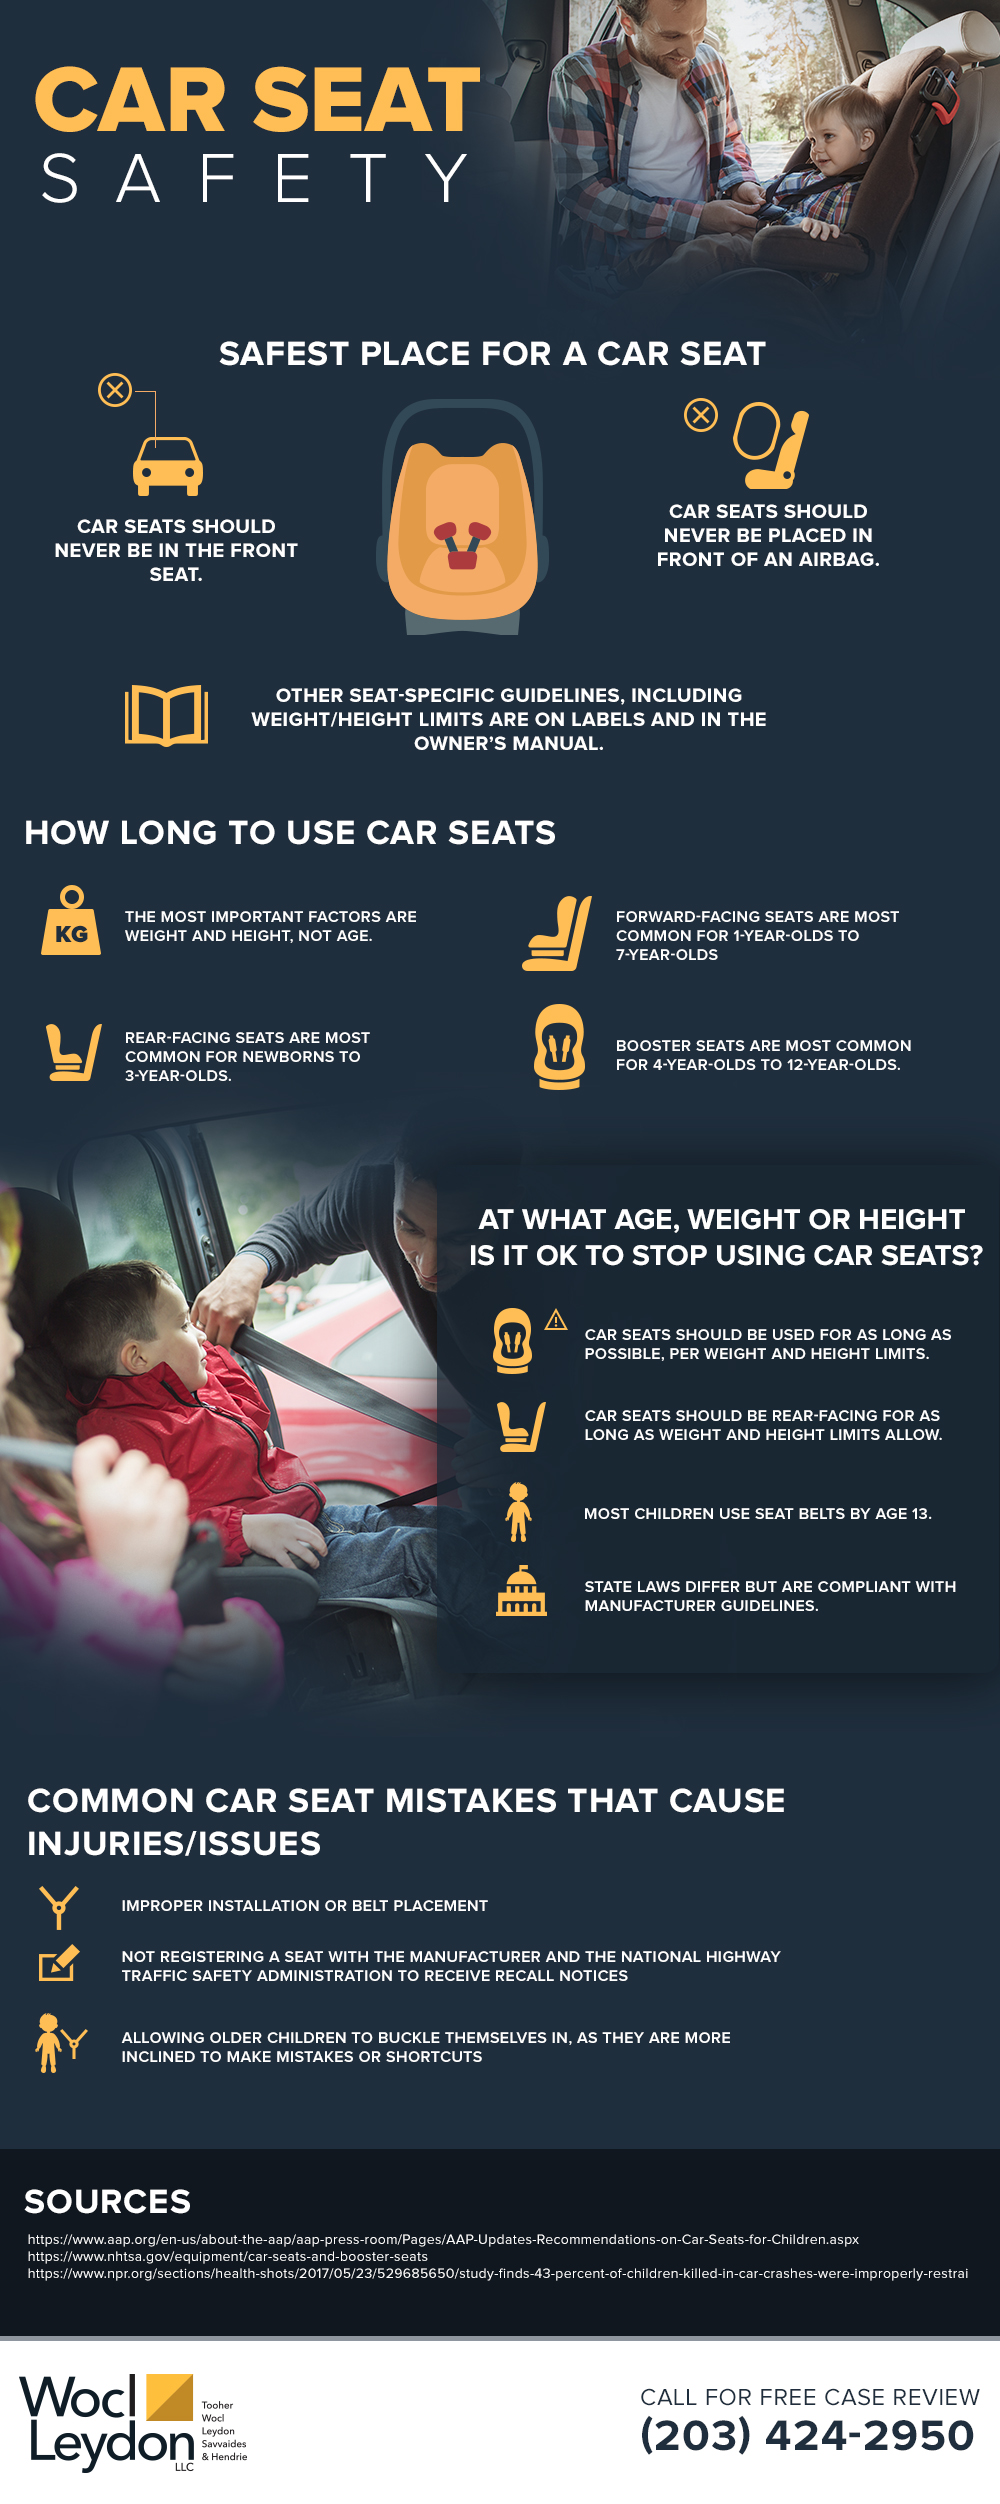 Why You Should Think About The Safety of The Family Before Driving? #Infographic